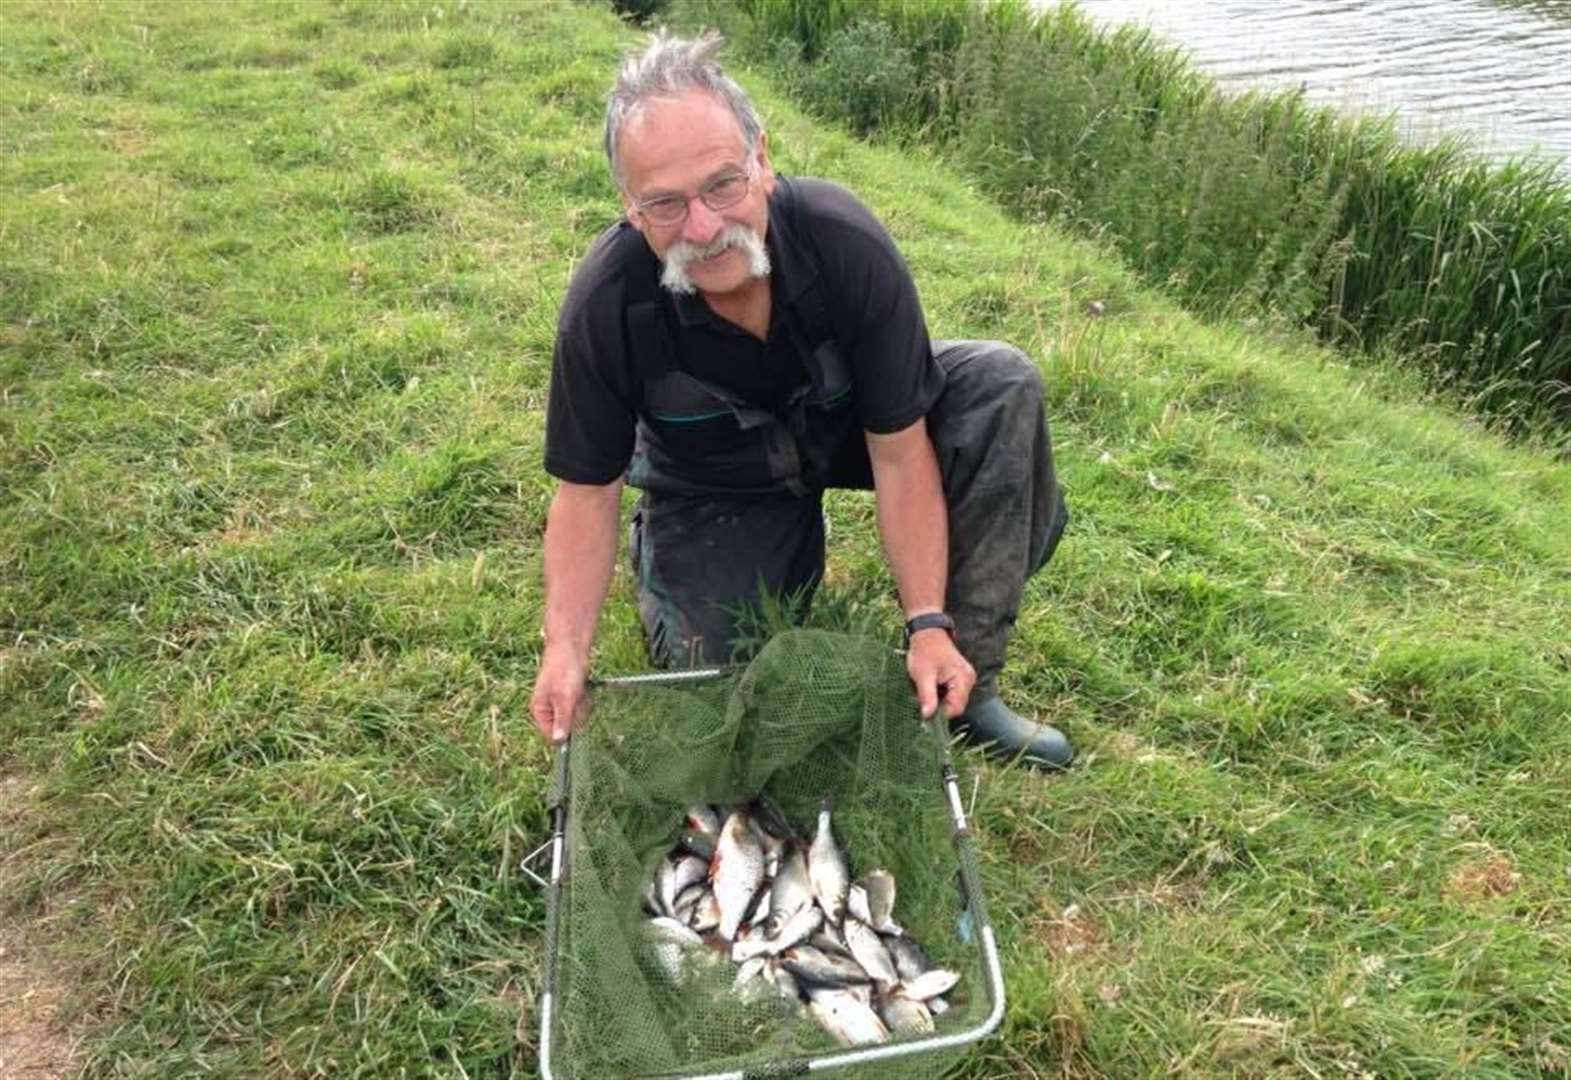 Angling: Tydd Gote Wednesday regular open match fished on North Level Drain sees bitterly cold Fenland conditions but a few bites to be had